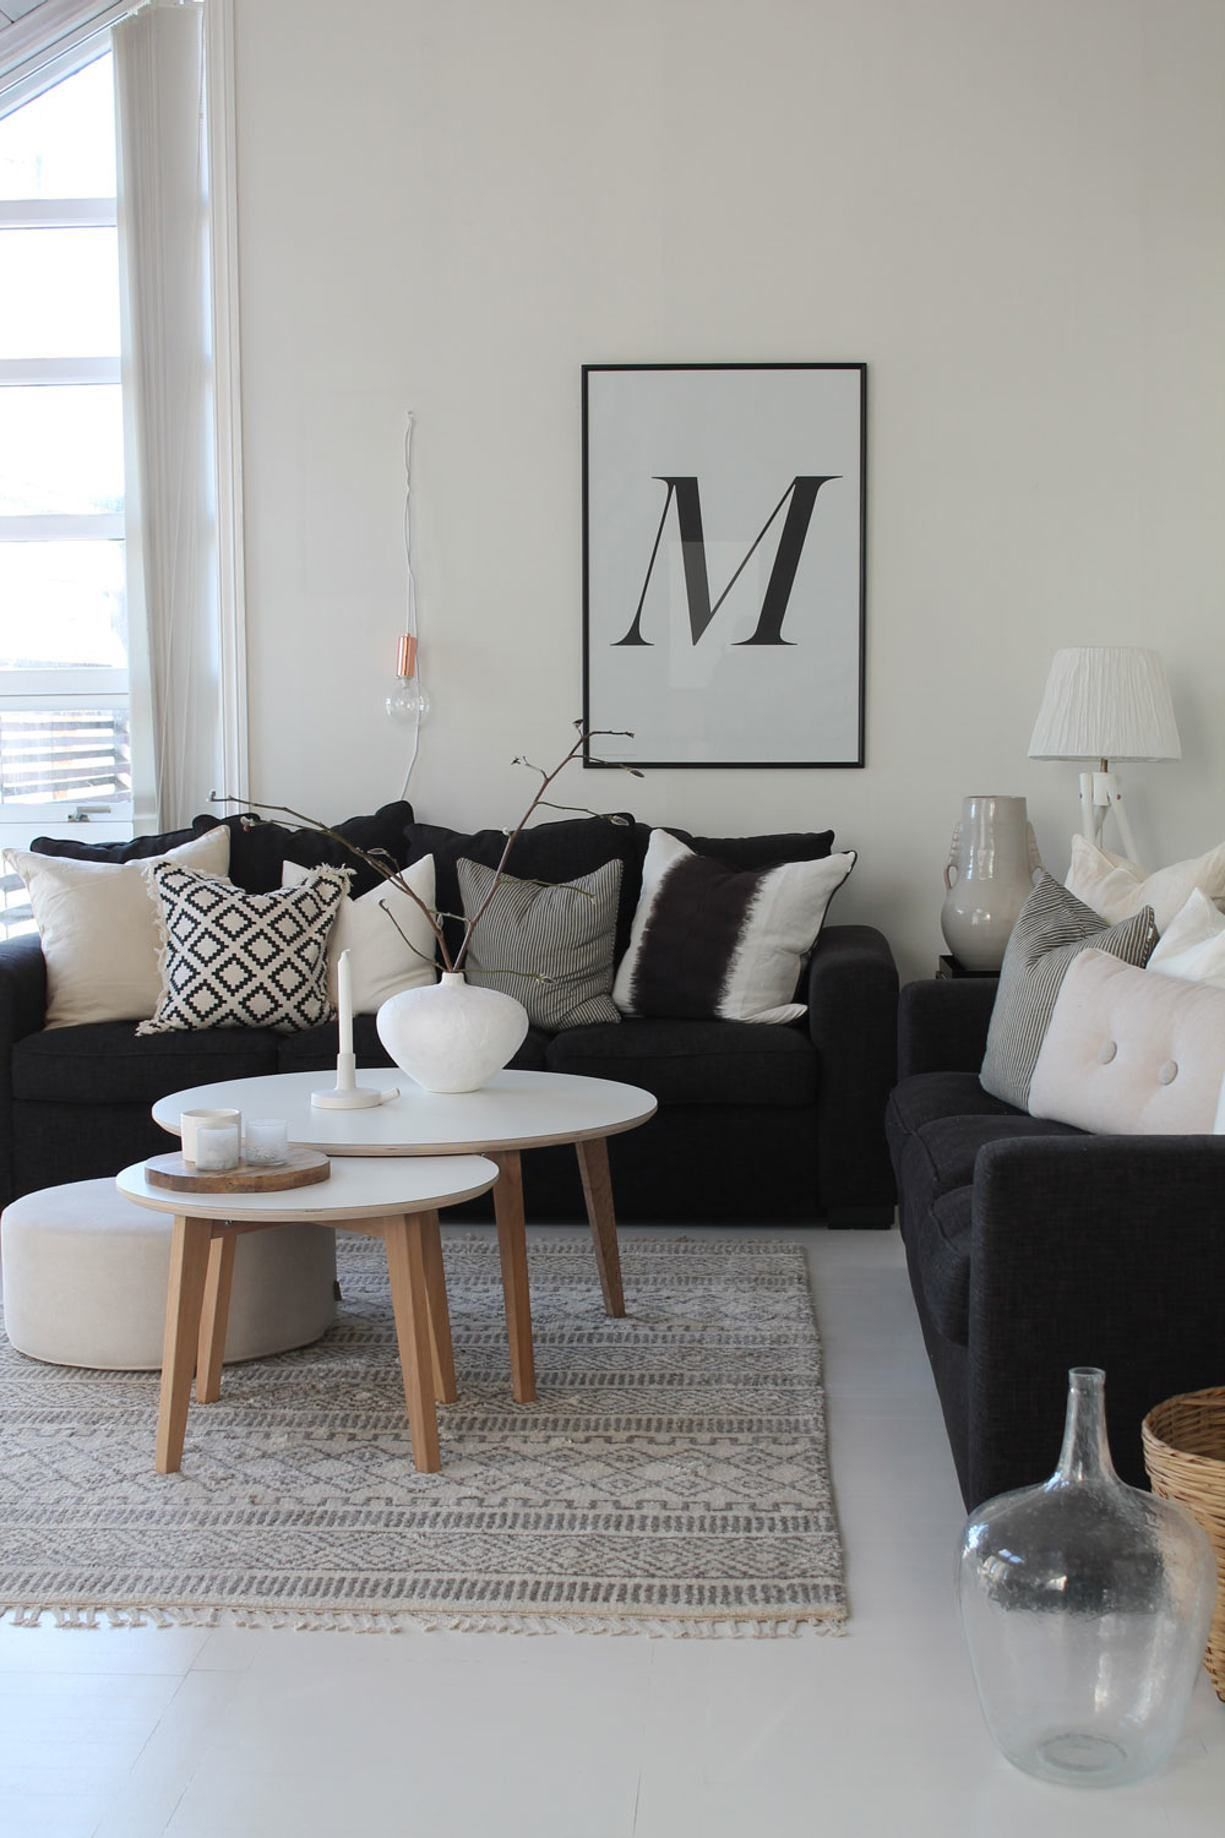 Black White With Some Textures Pillows Rug Wood Baskets